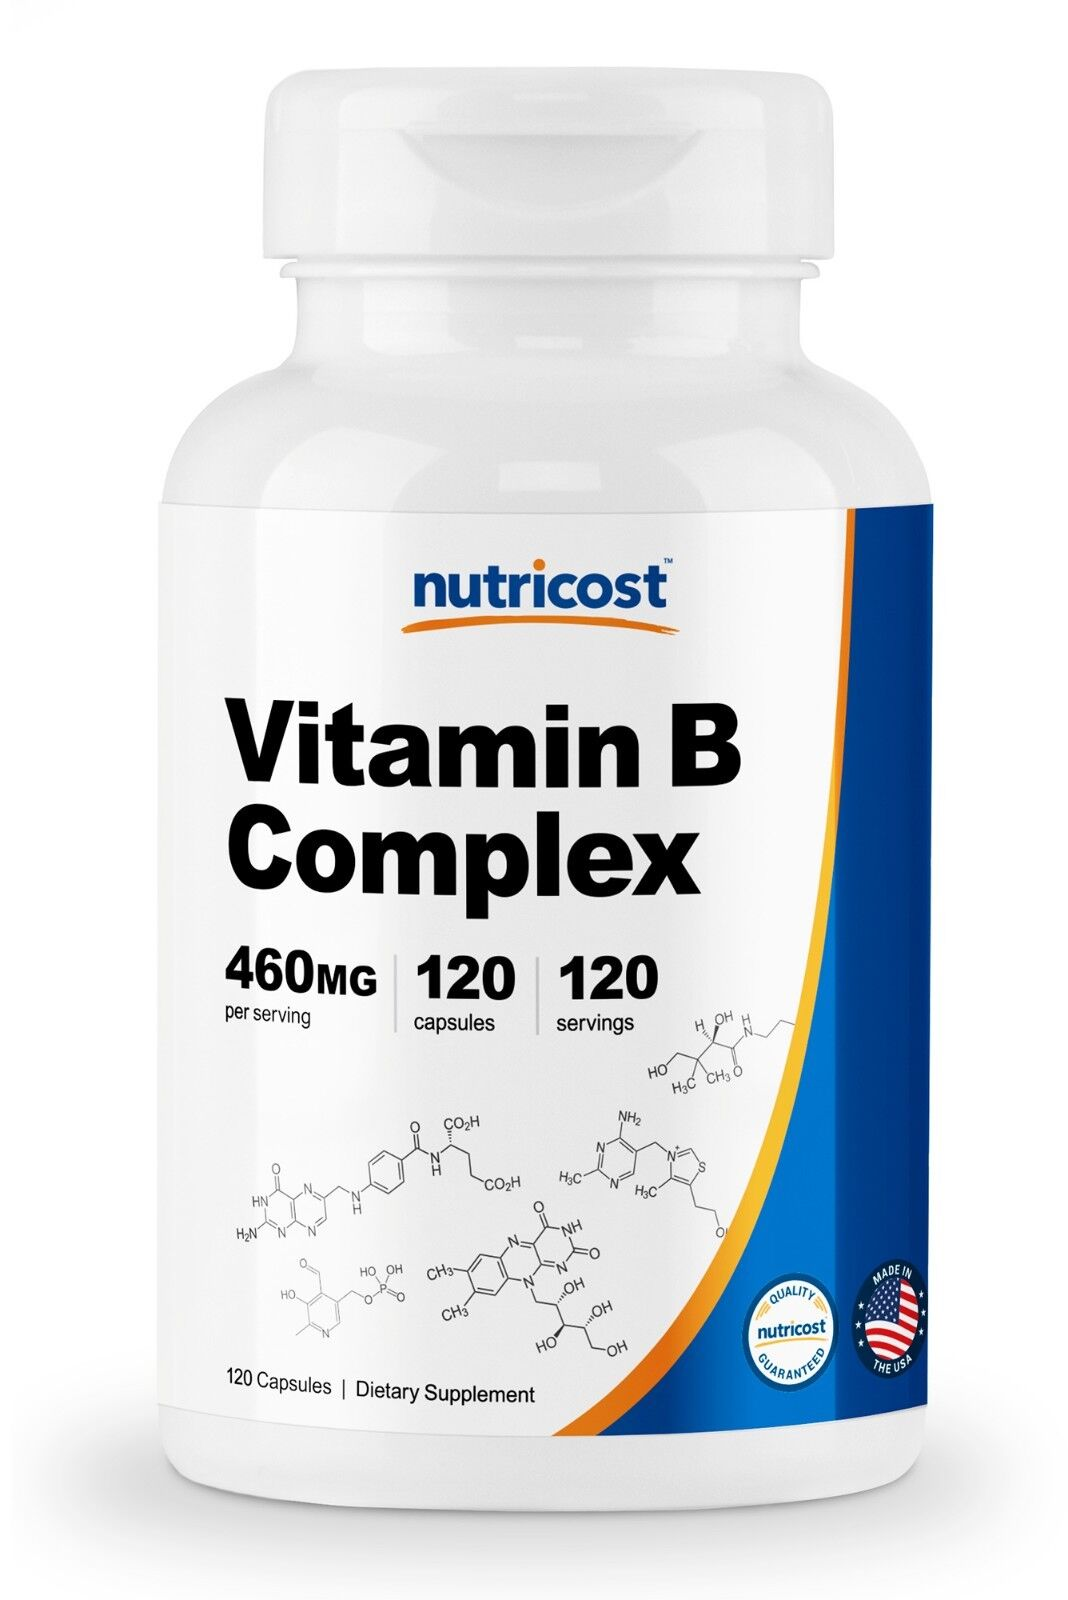 Nutricost High Potency Vitamin B Complex 460mg, 120 Capsules